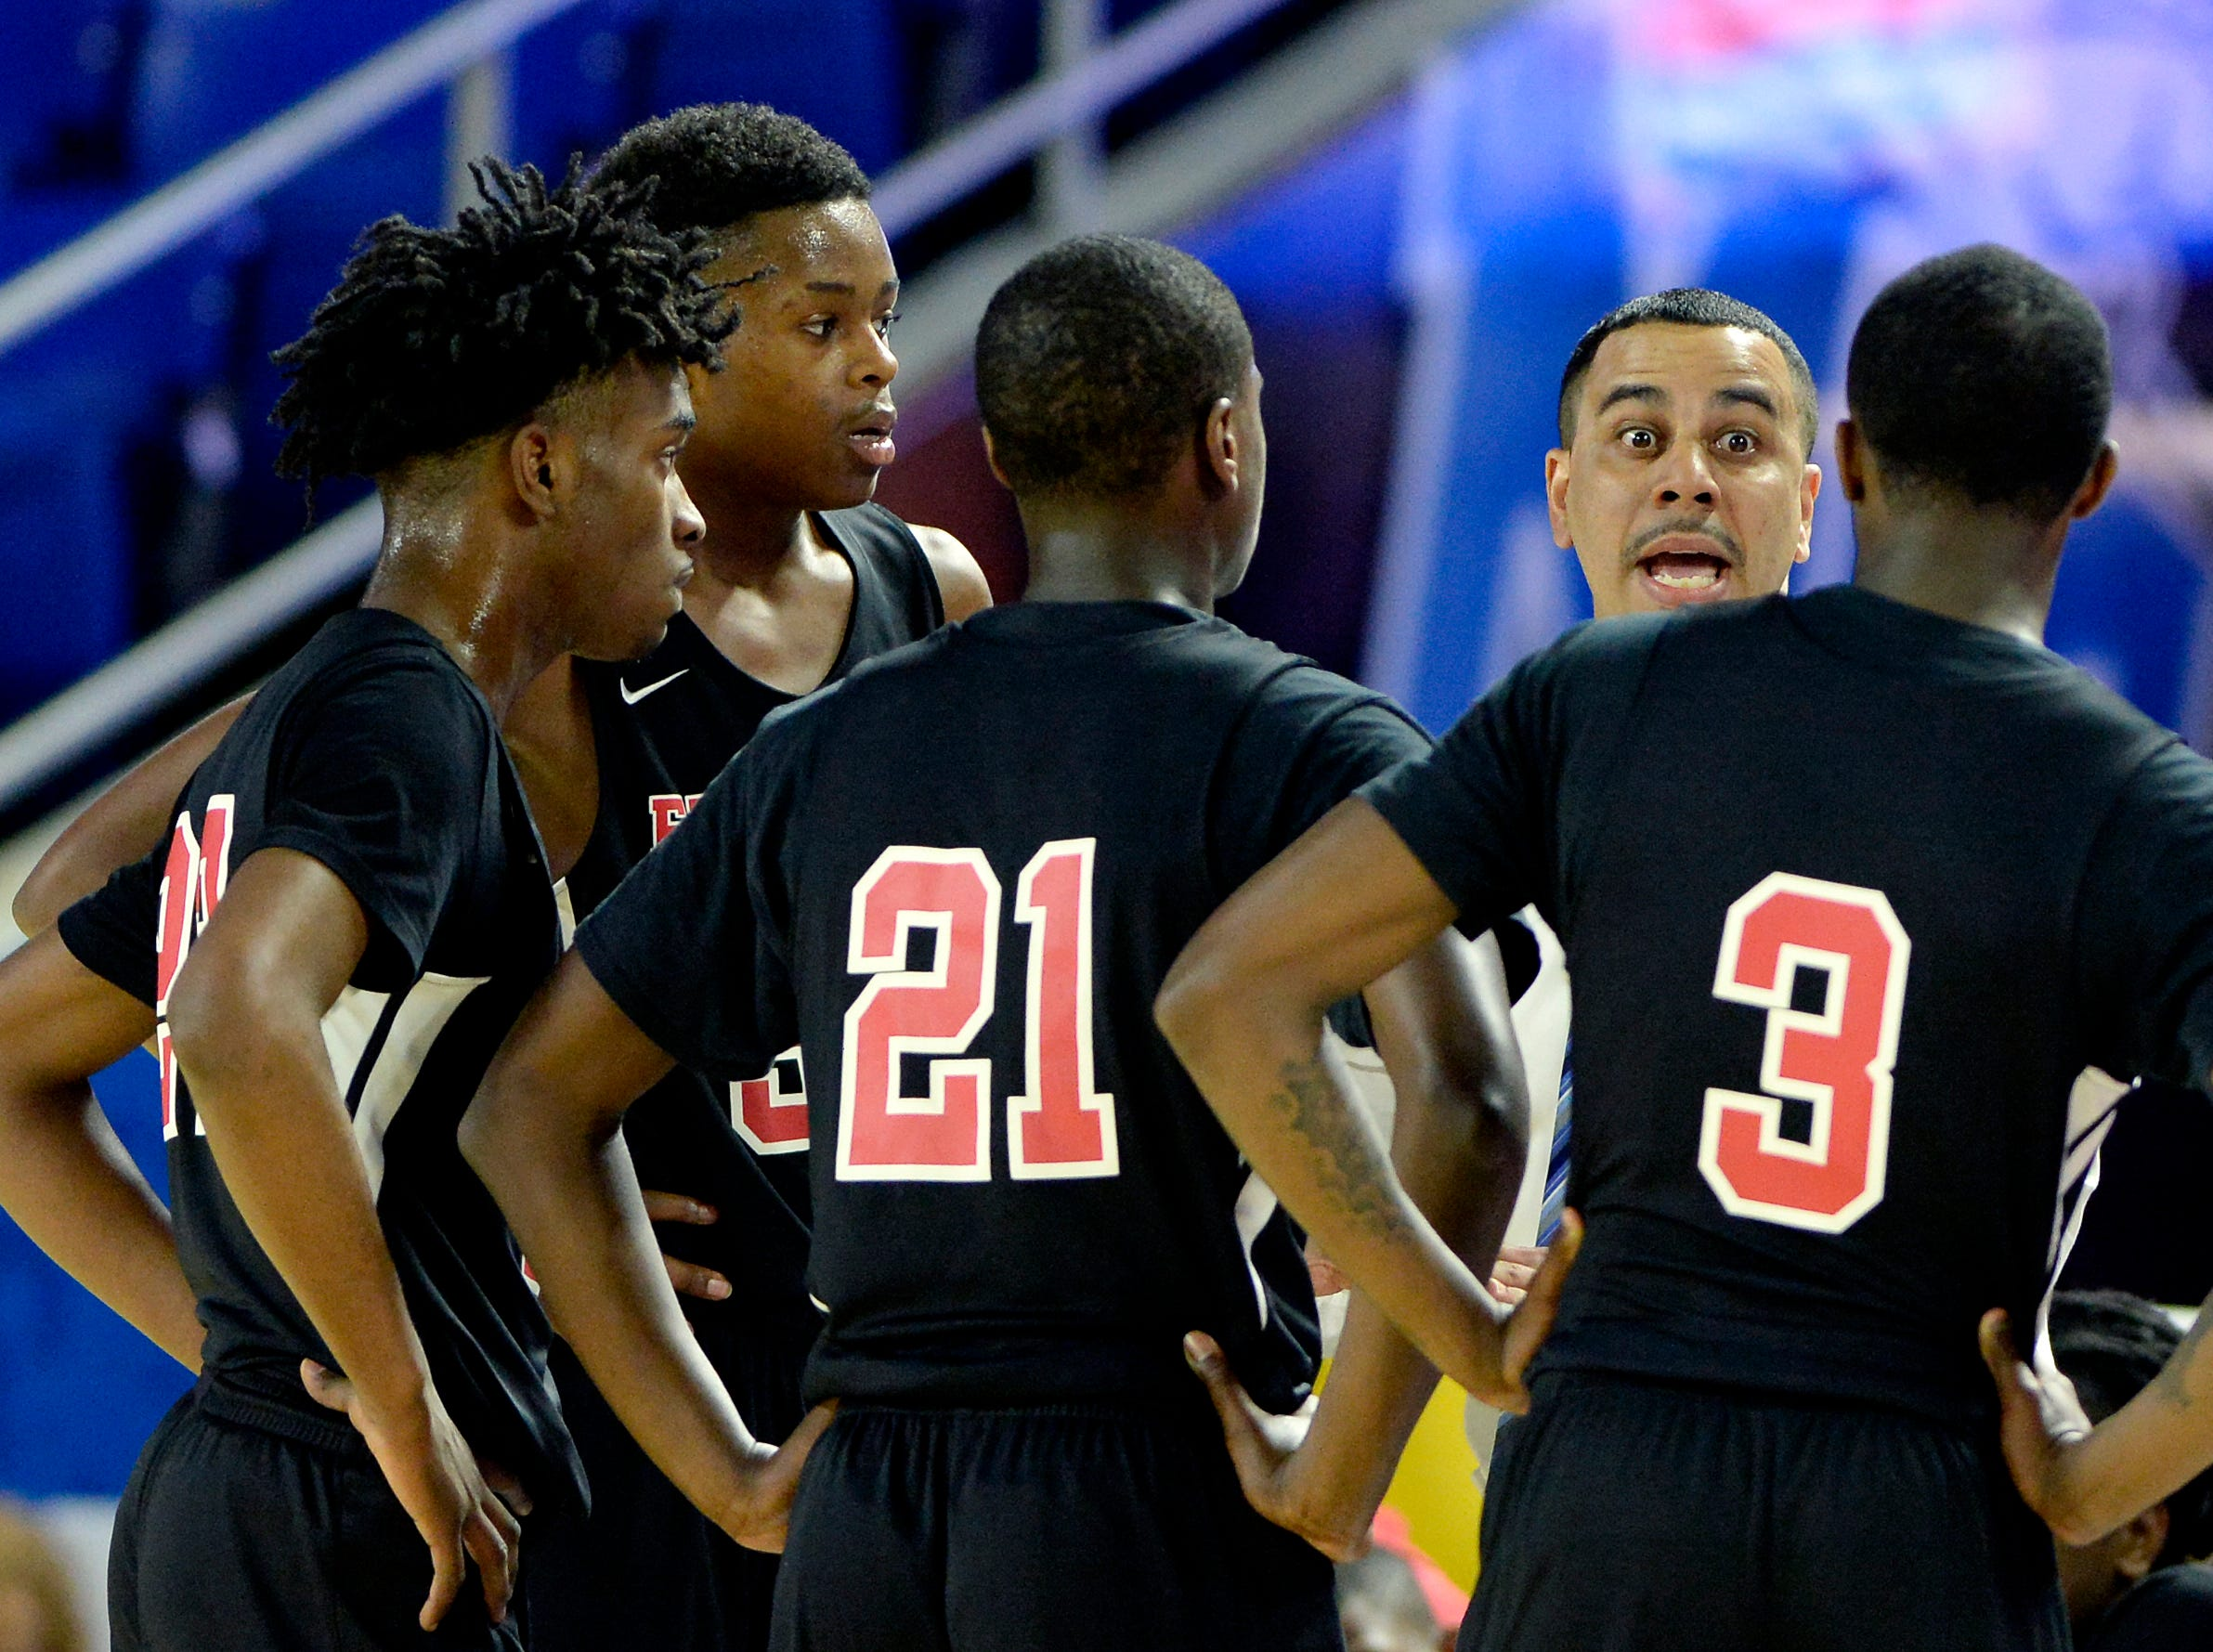 Pearl-Cohn head coach Terry Cole talks with his players during the first half of a Class AA boys state basketball quarterfinal game against Brainerd Wednesday, March 13, 2019, in Murfreesboro, Tenn.